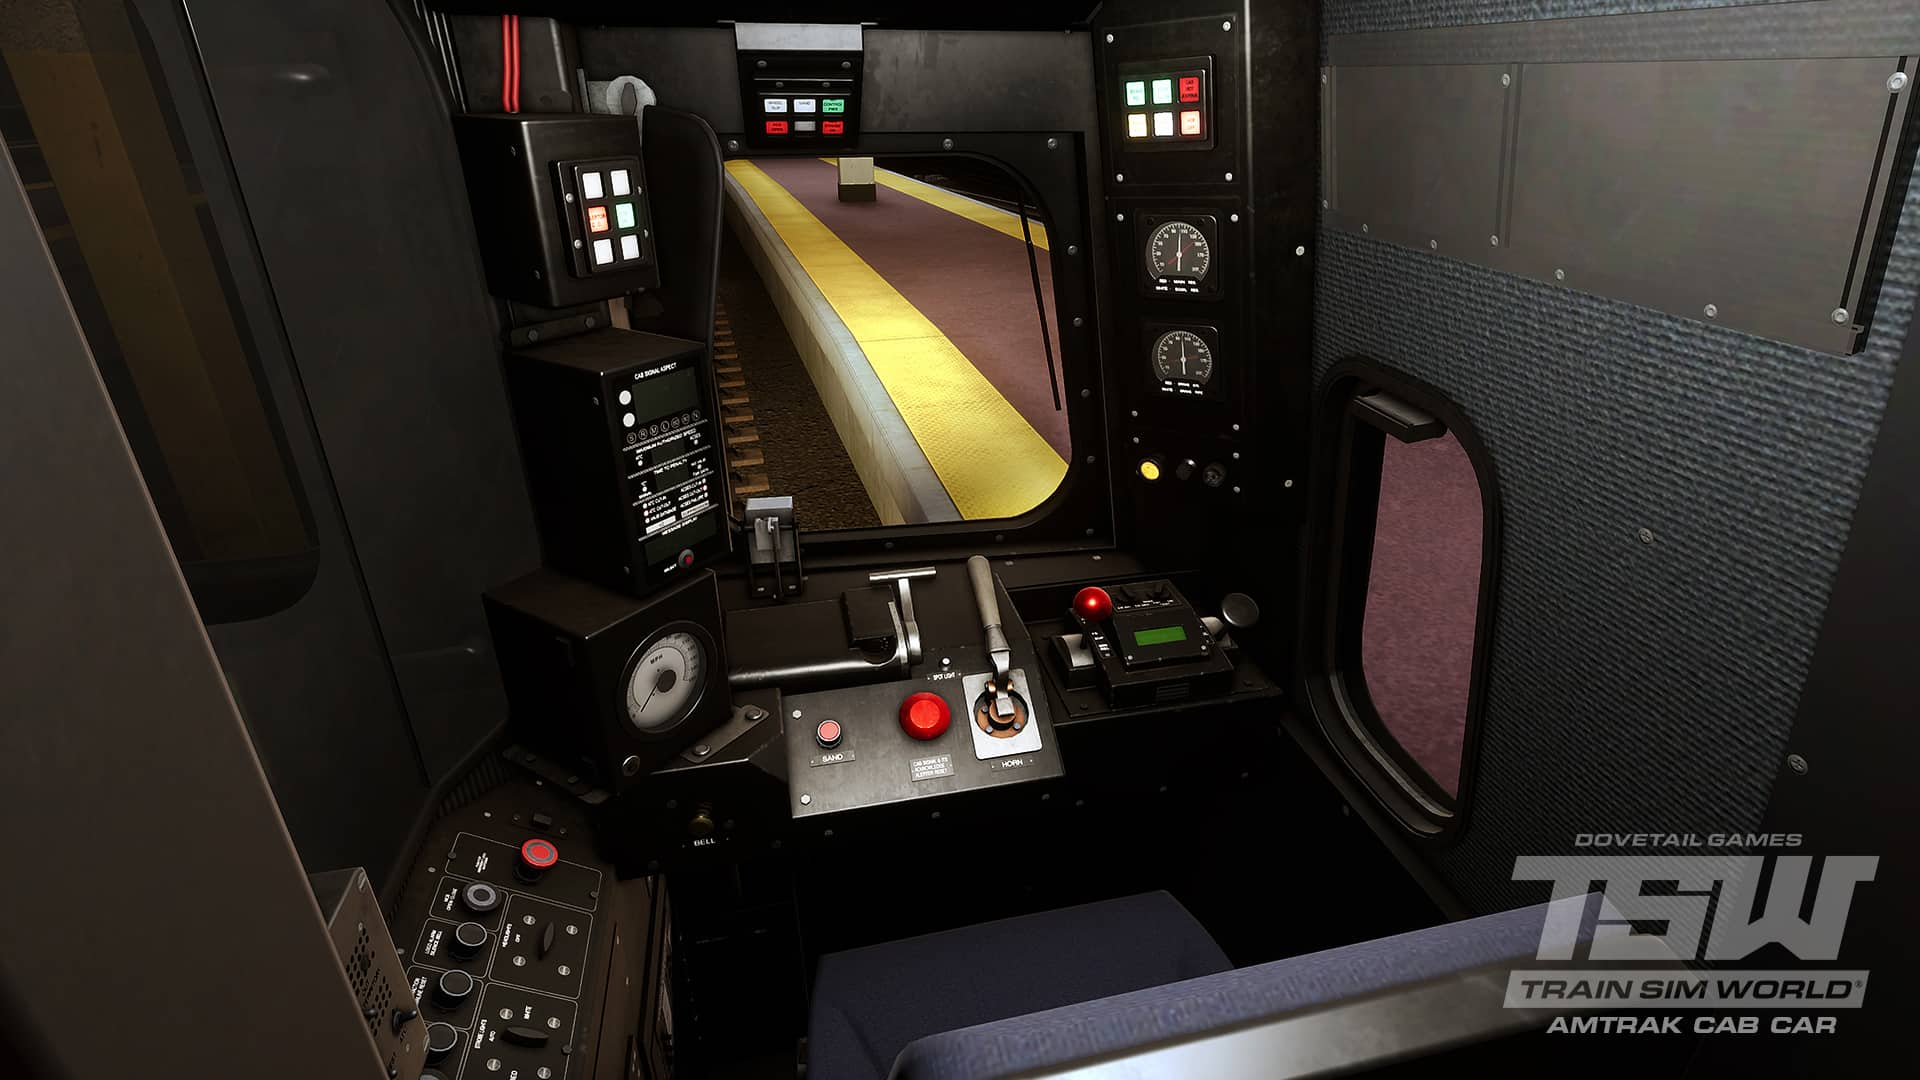 Tsw Amtrak S Cab Car Is Coming